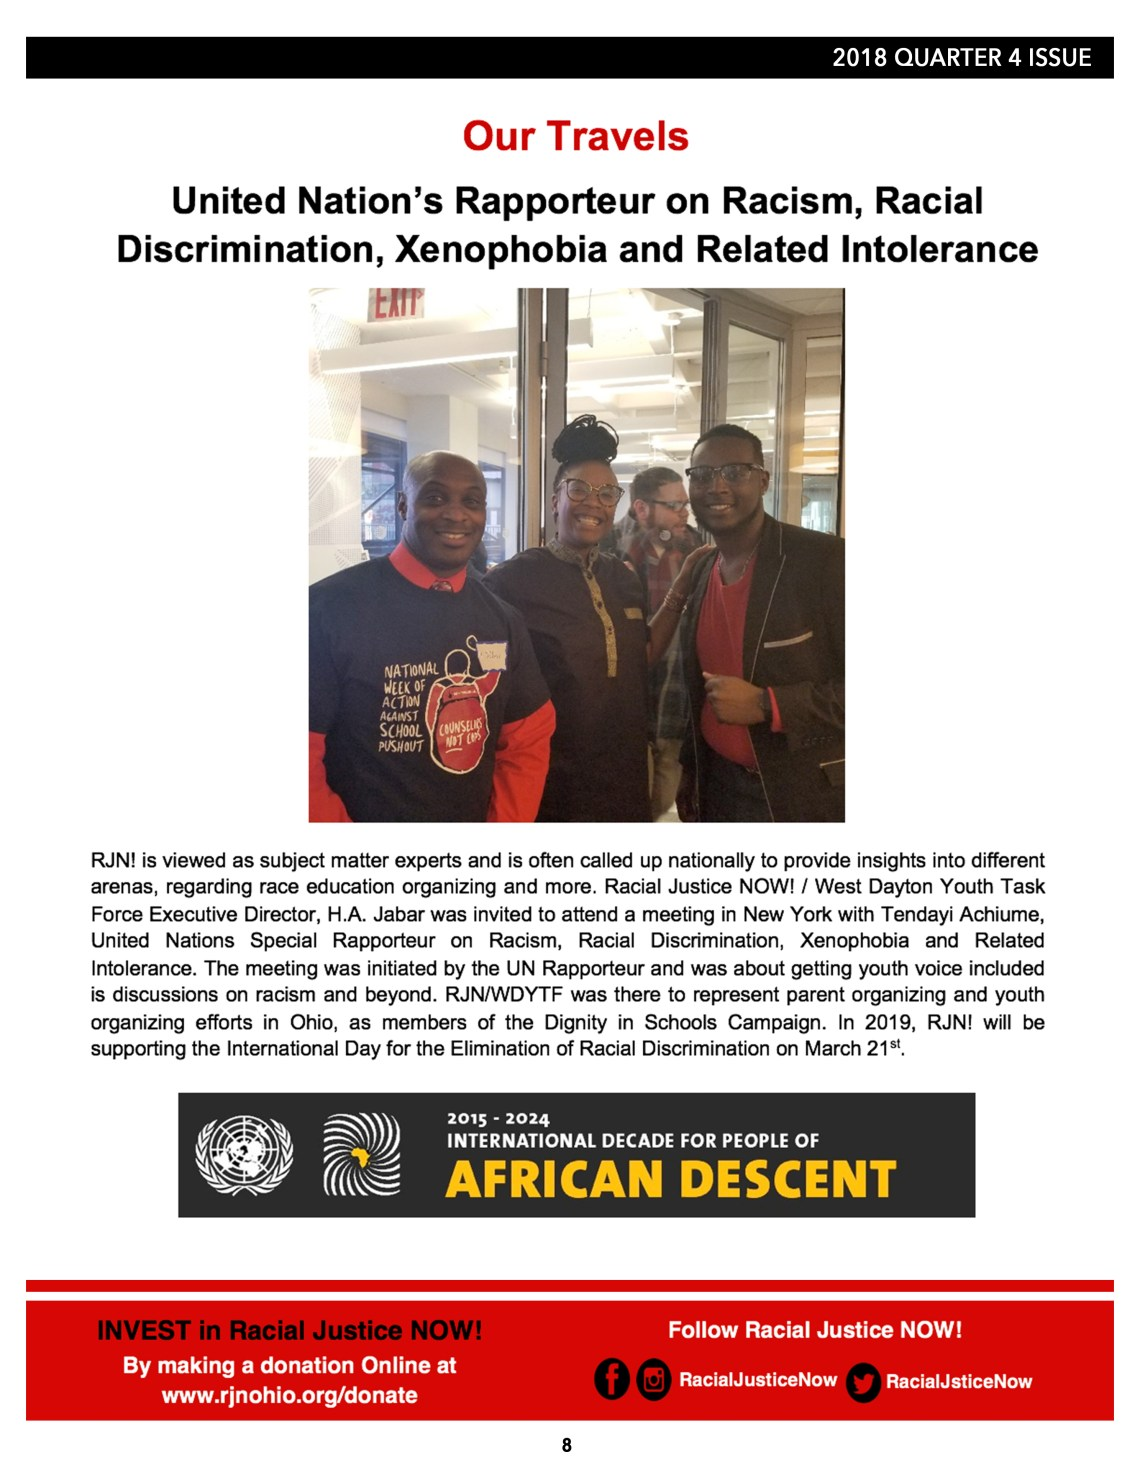 b983dc9600d78 Racial Justice NOW! 2018 Wrap Up Newsletter. Education News   Media ·  February 19